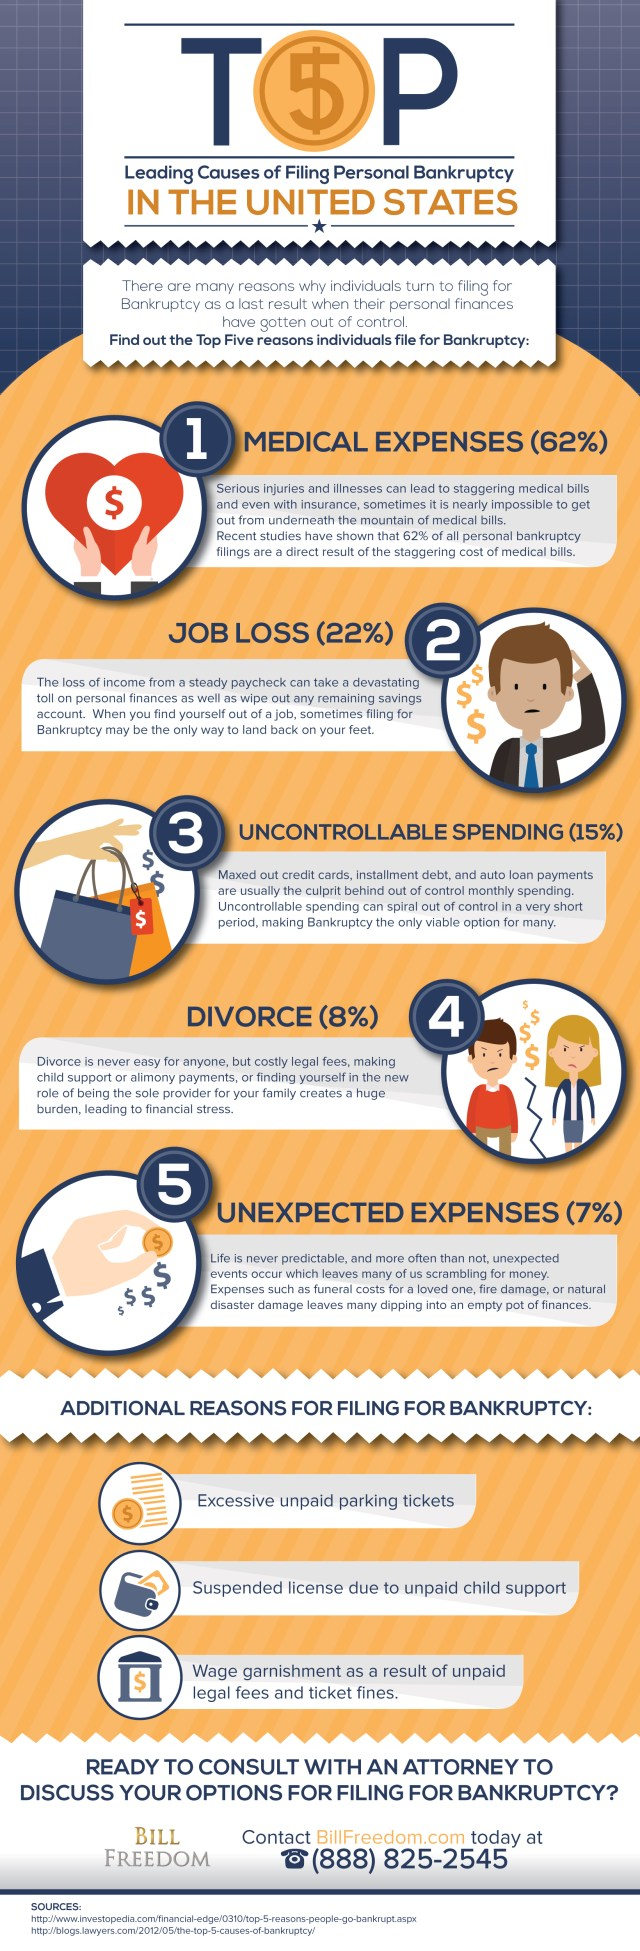 top-five-leading-causes-of-filing-personal-bankruptcy-in-the-united-states_5505265d38bbc